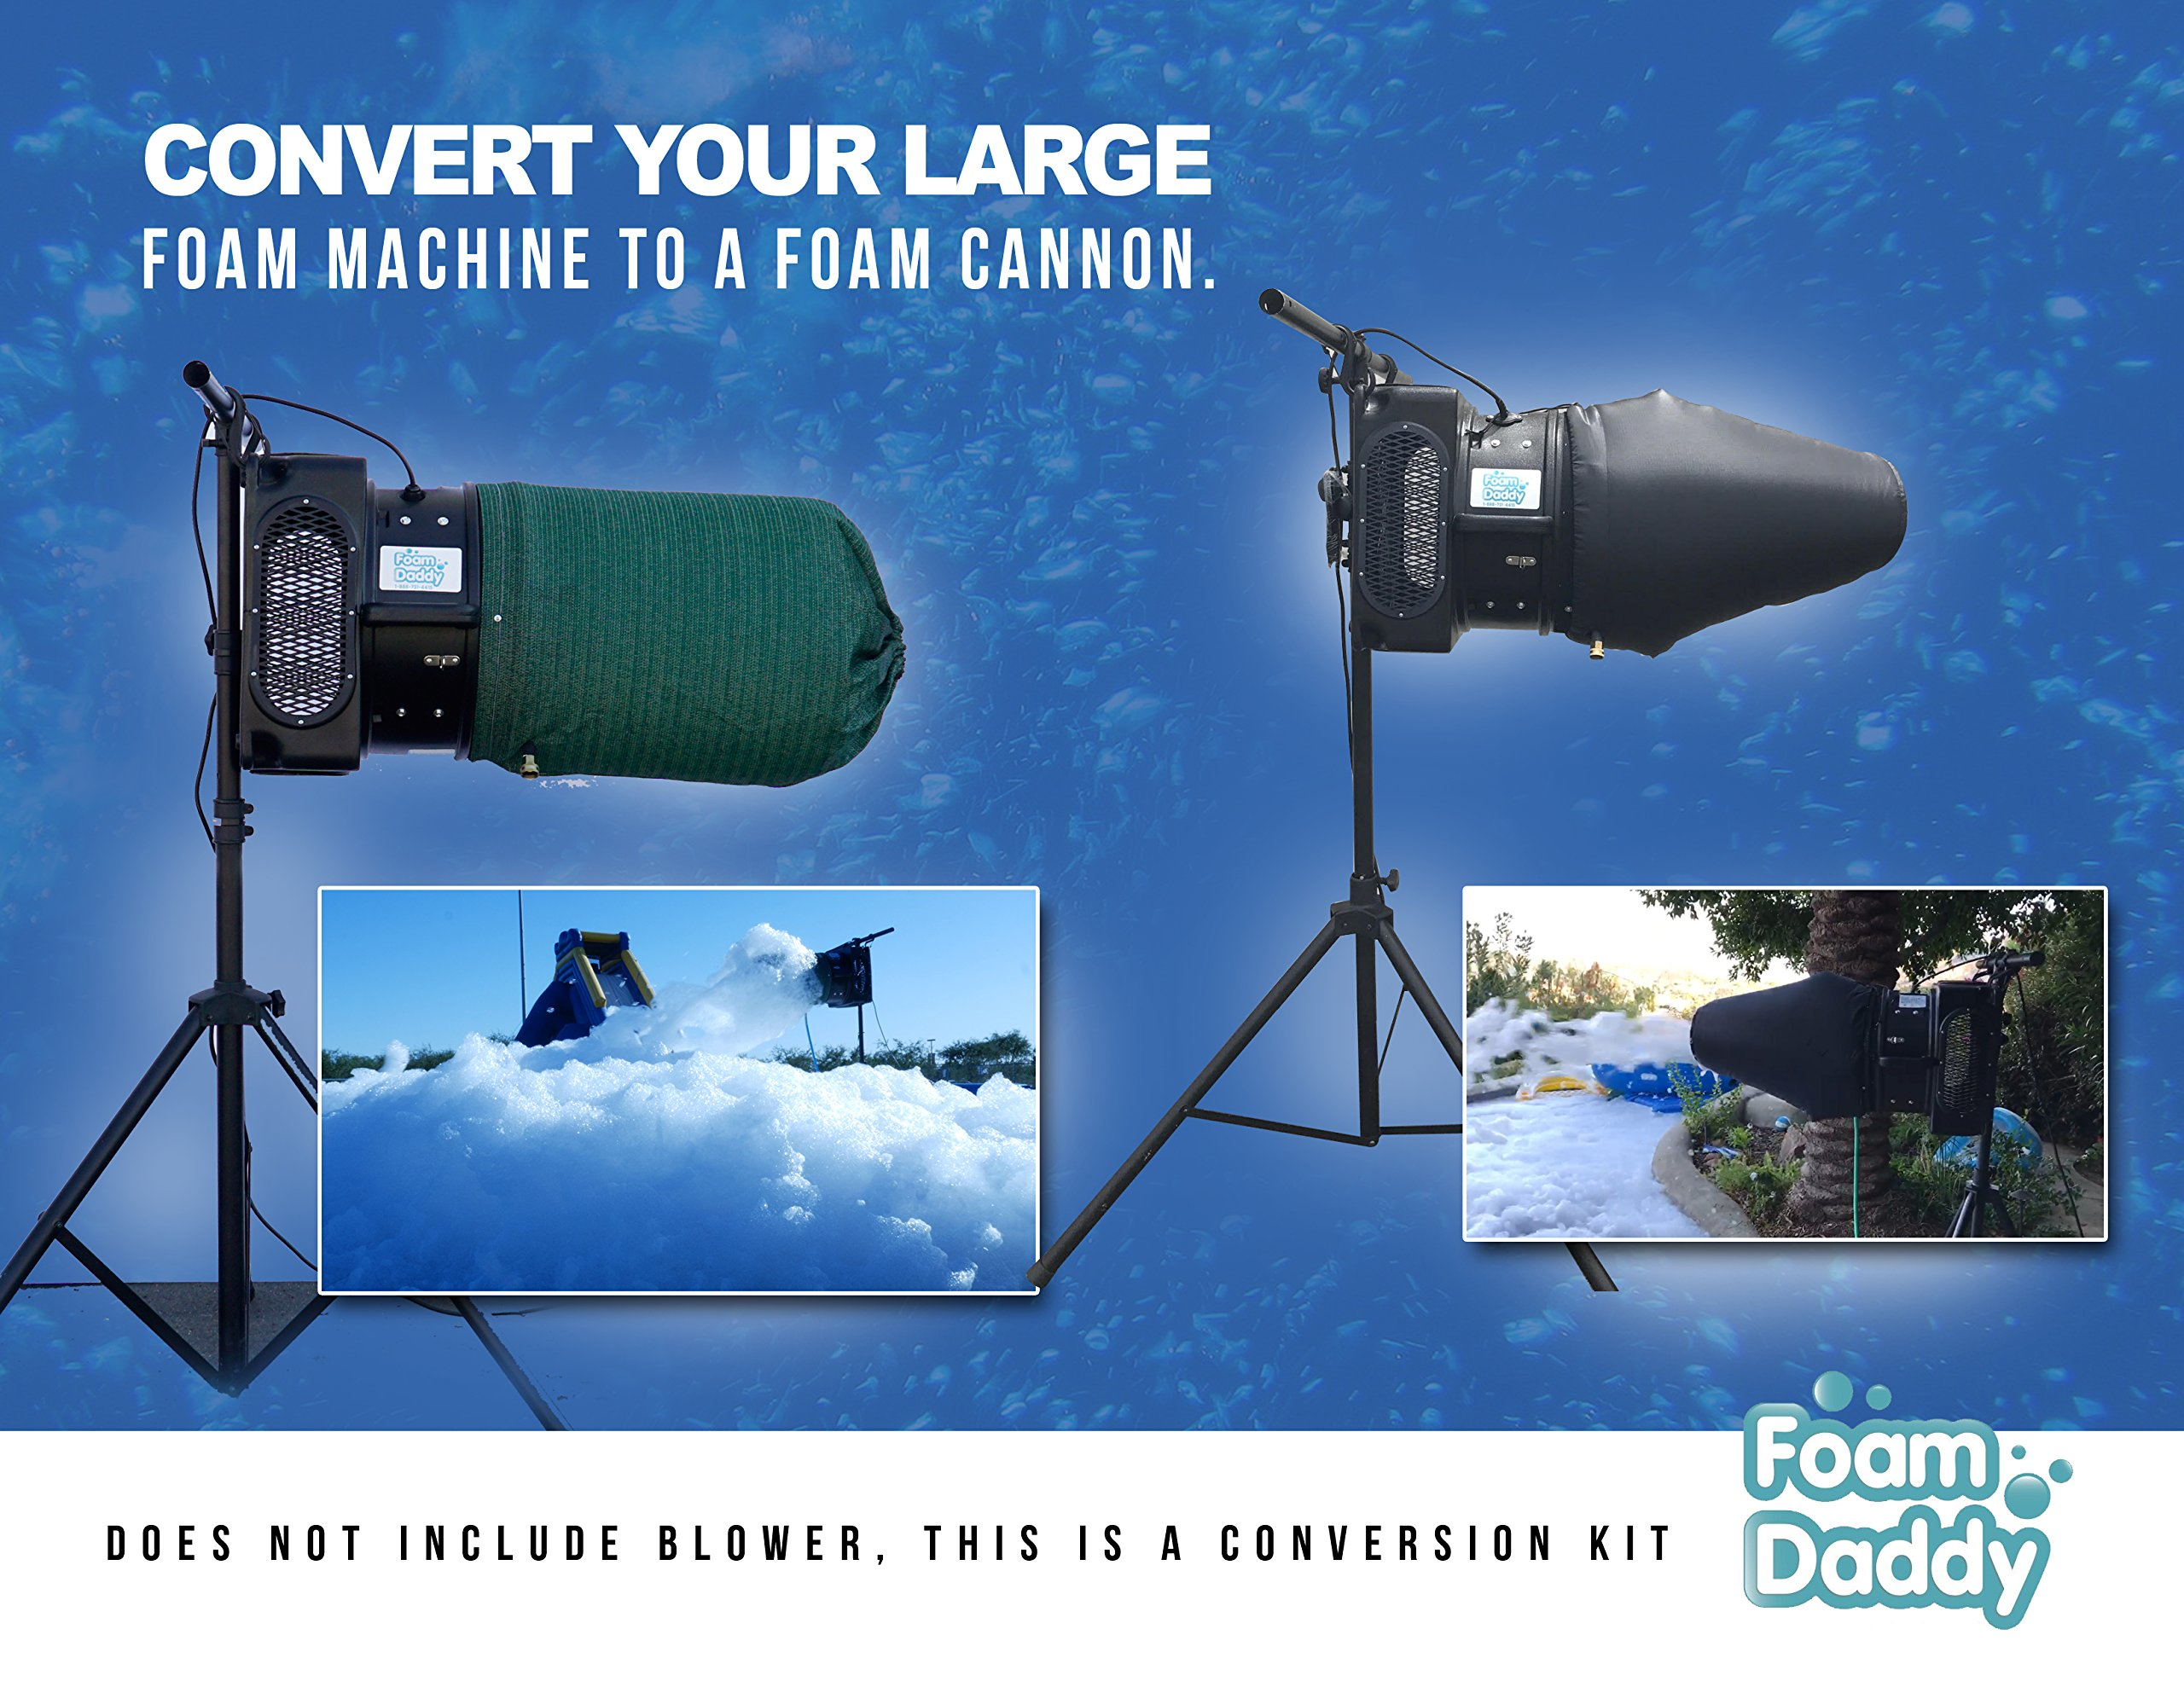 This is not a Foam machine - Shoot 20 to 25 feet! - Baby Cannon Conversion Kit Makes 400 gallons of Foam (This is an extension for a foam machine)